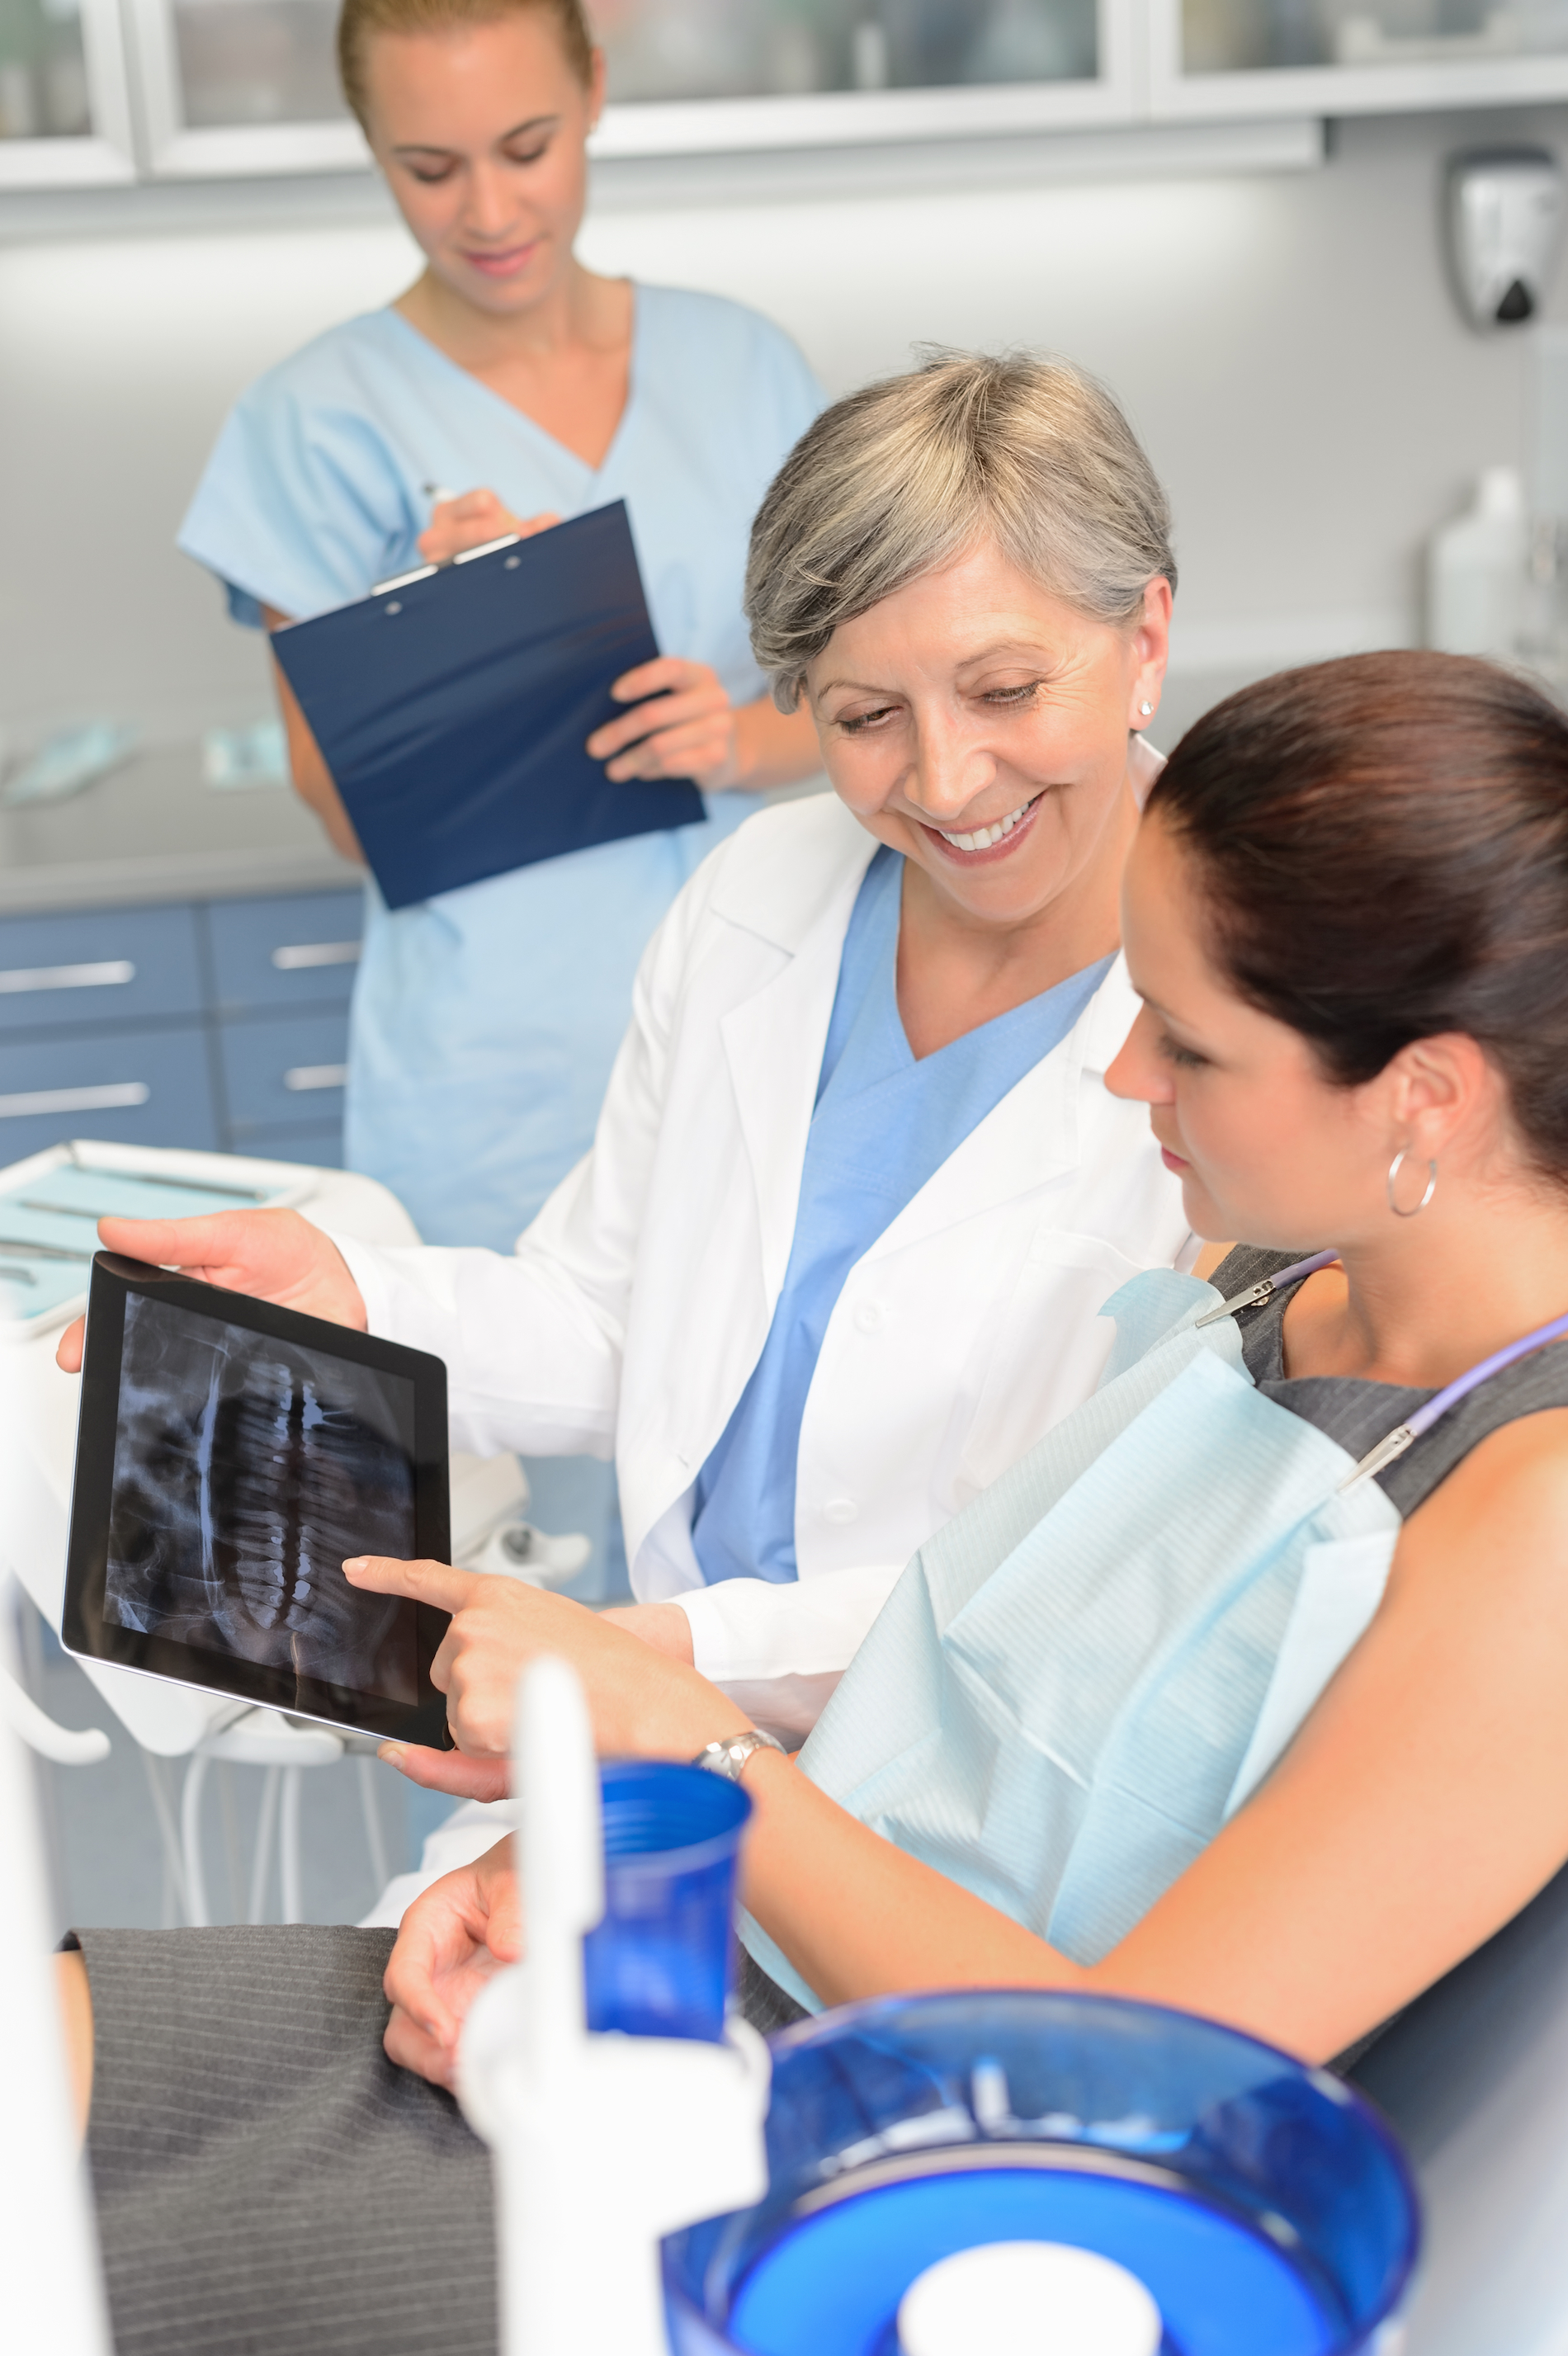 Why Do Dentists Use X-Rays?